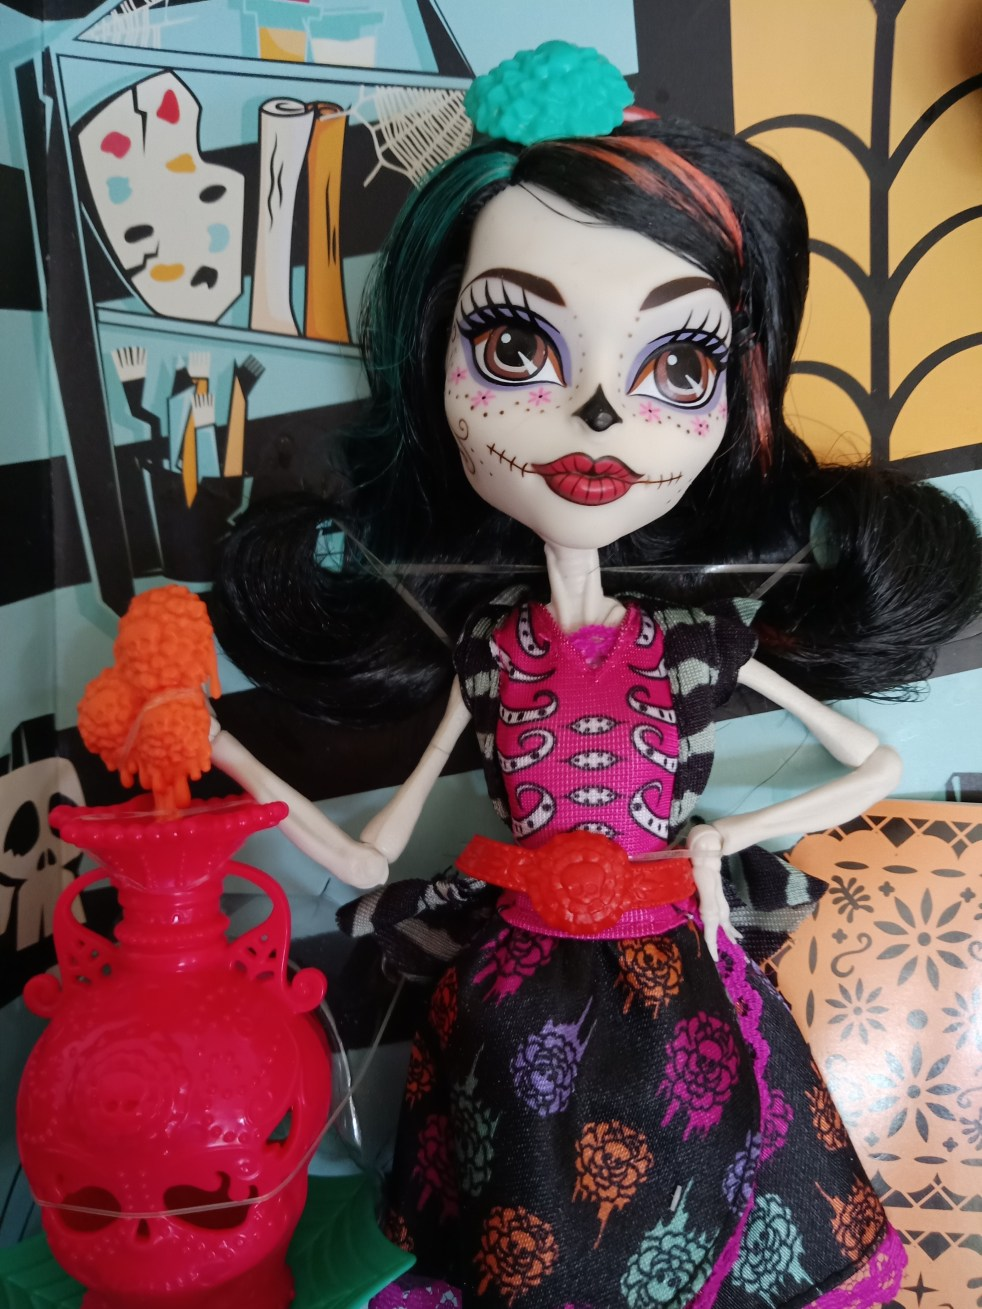 Monster high doll with black hair and brown eyes